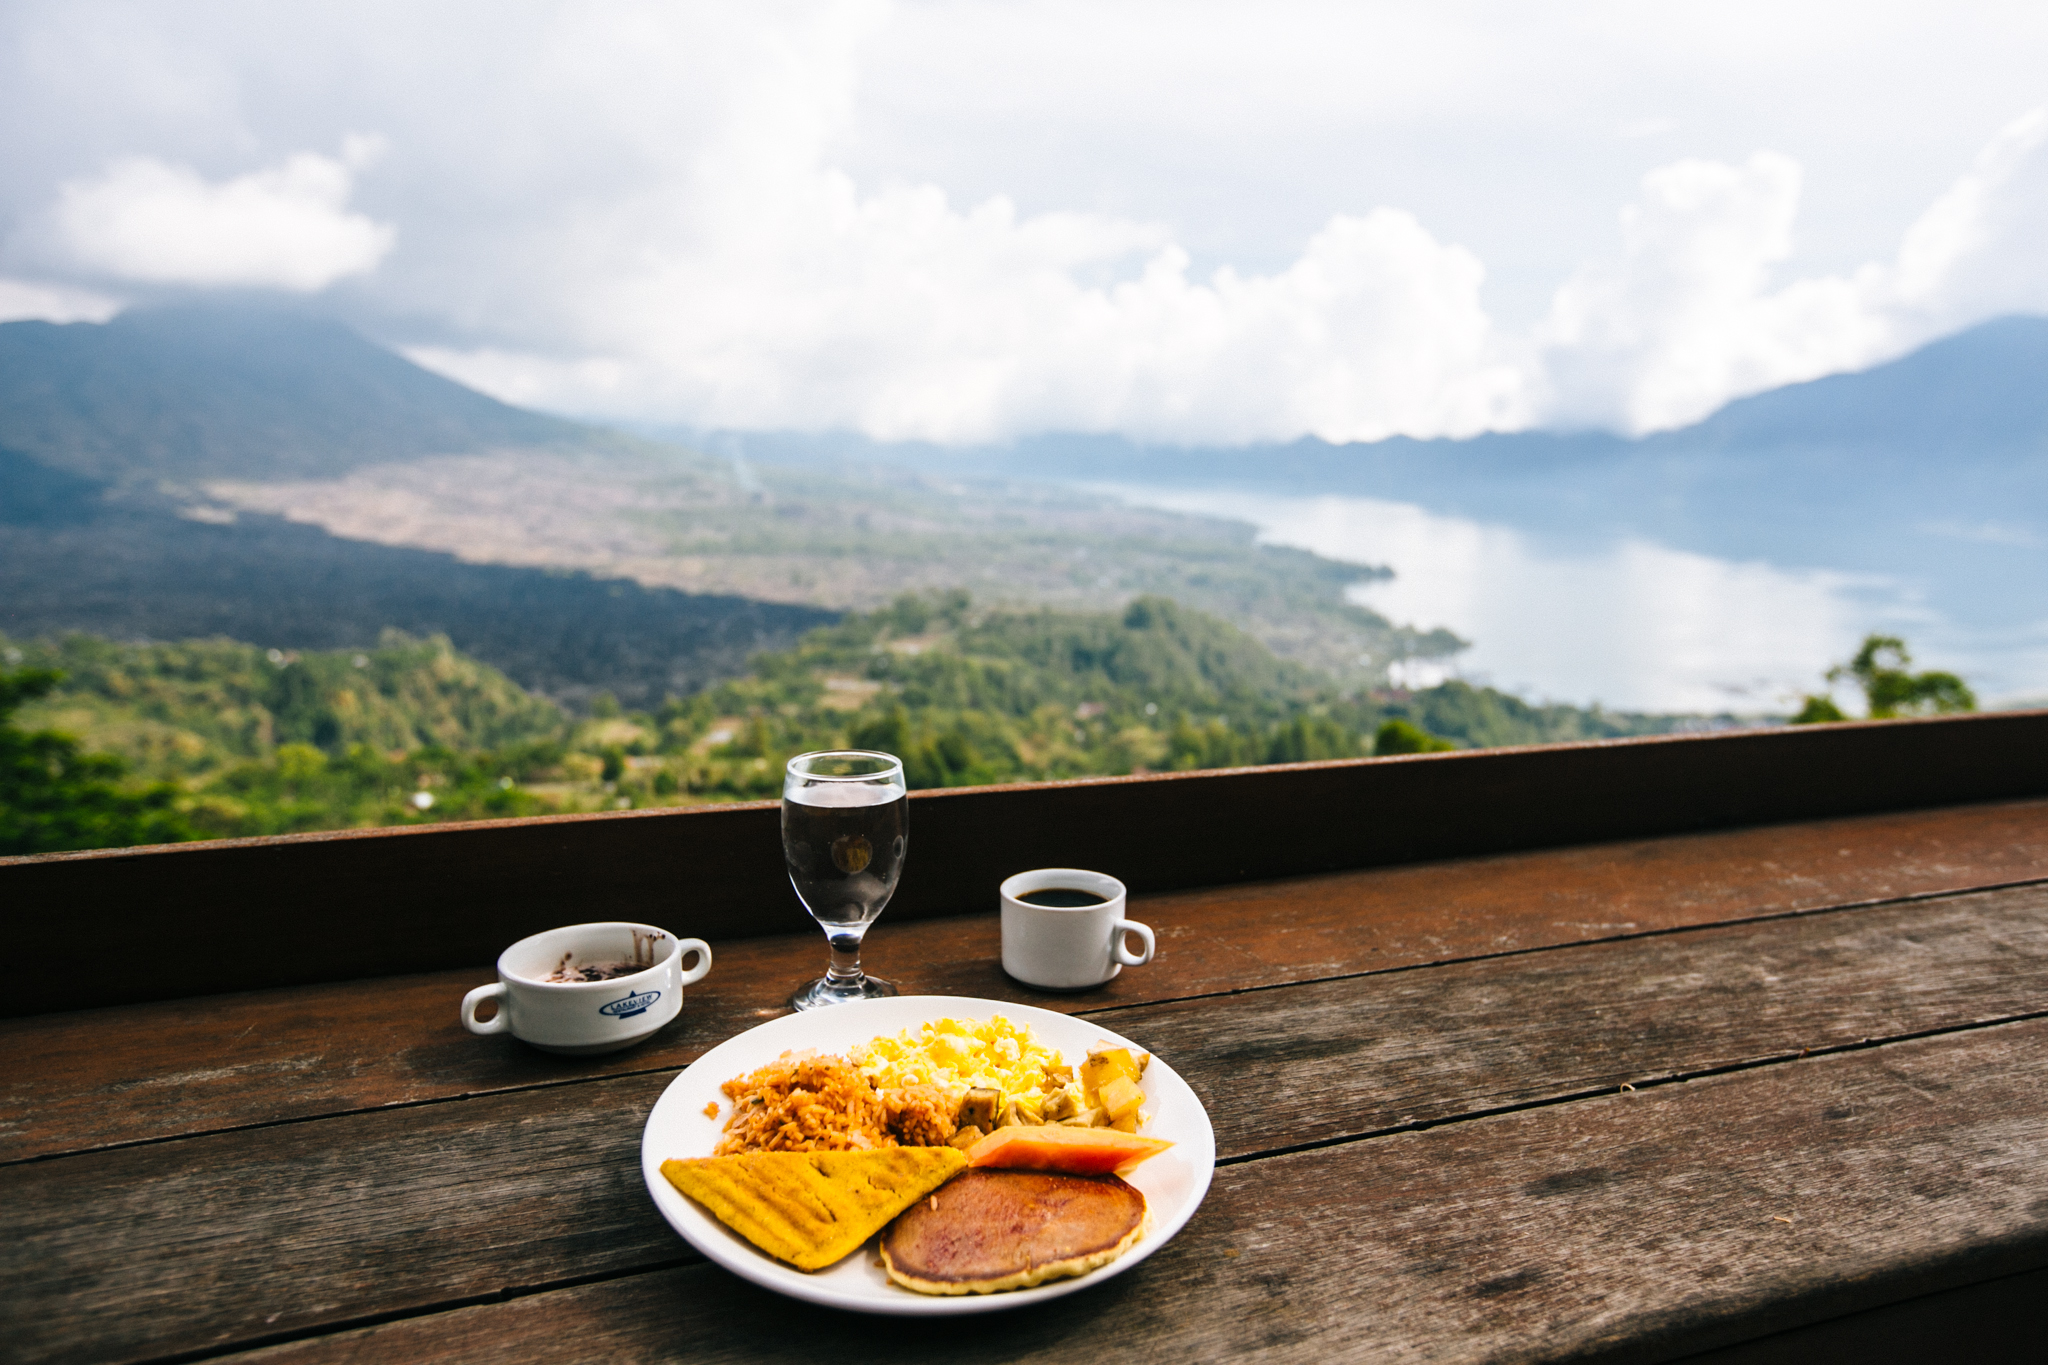 Breakfast at Mt Batur